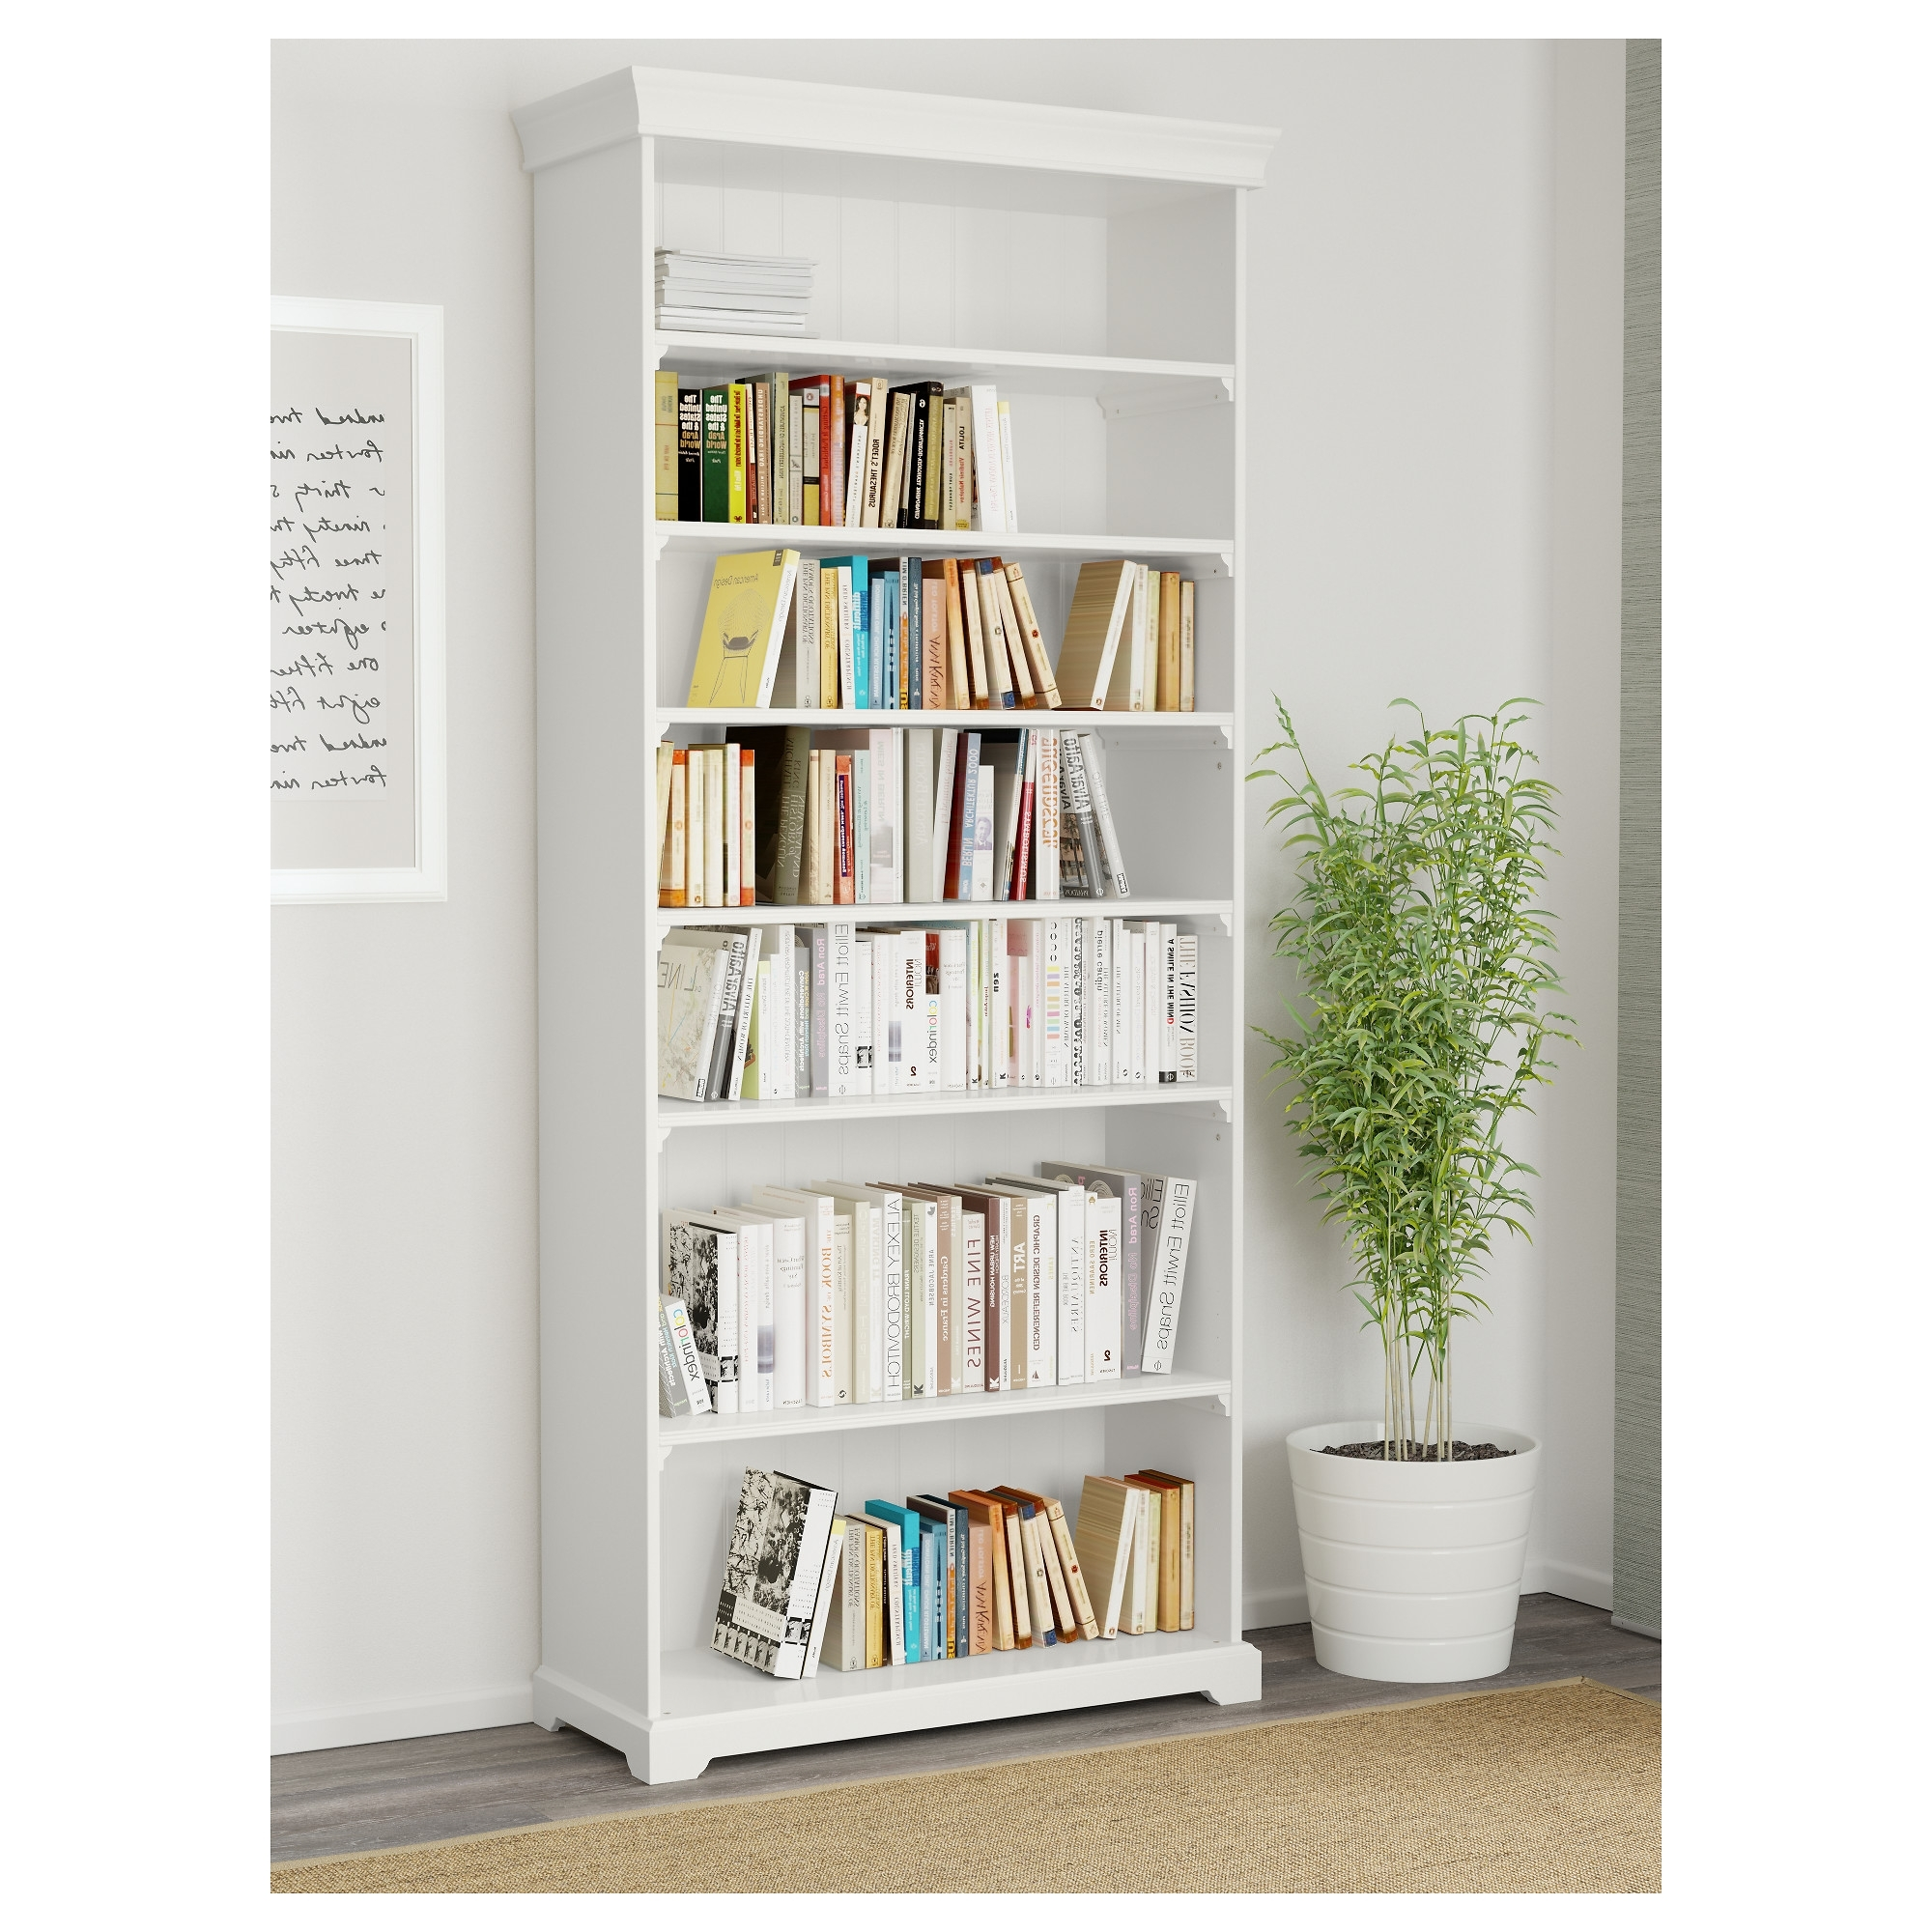 Liatorp Bookcases For Fashionable Liatorp Bookcase White 96X214 Cm – Ikea (View 3 of 15)